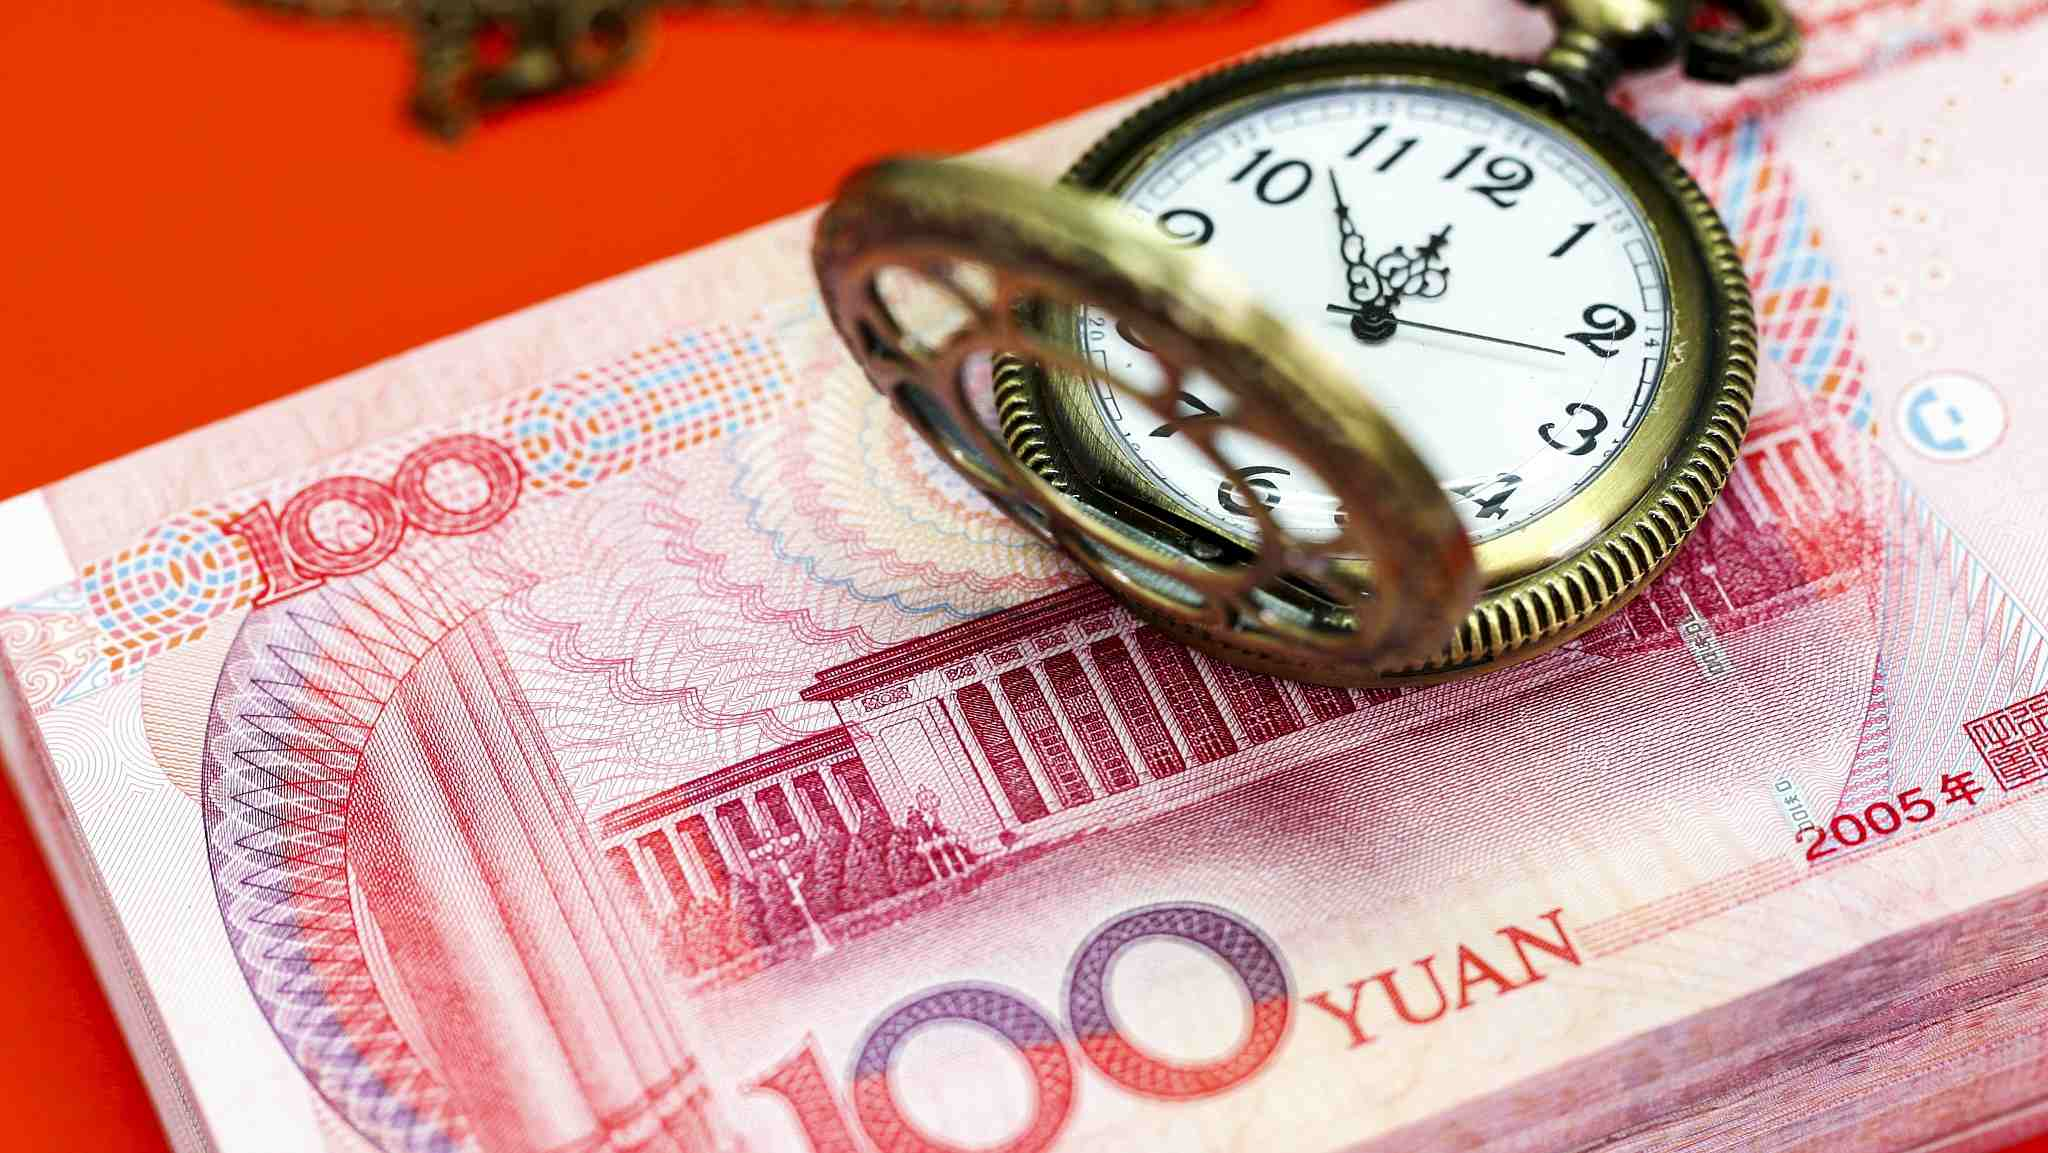 Opinions: Chinese yuan must become safer and stronger